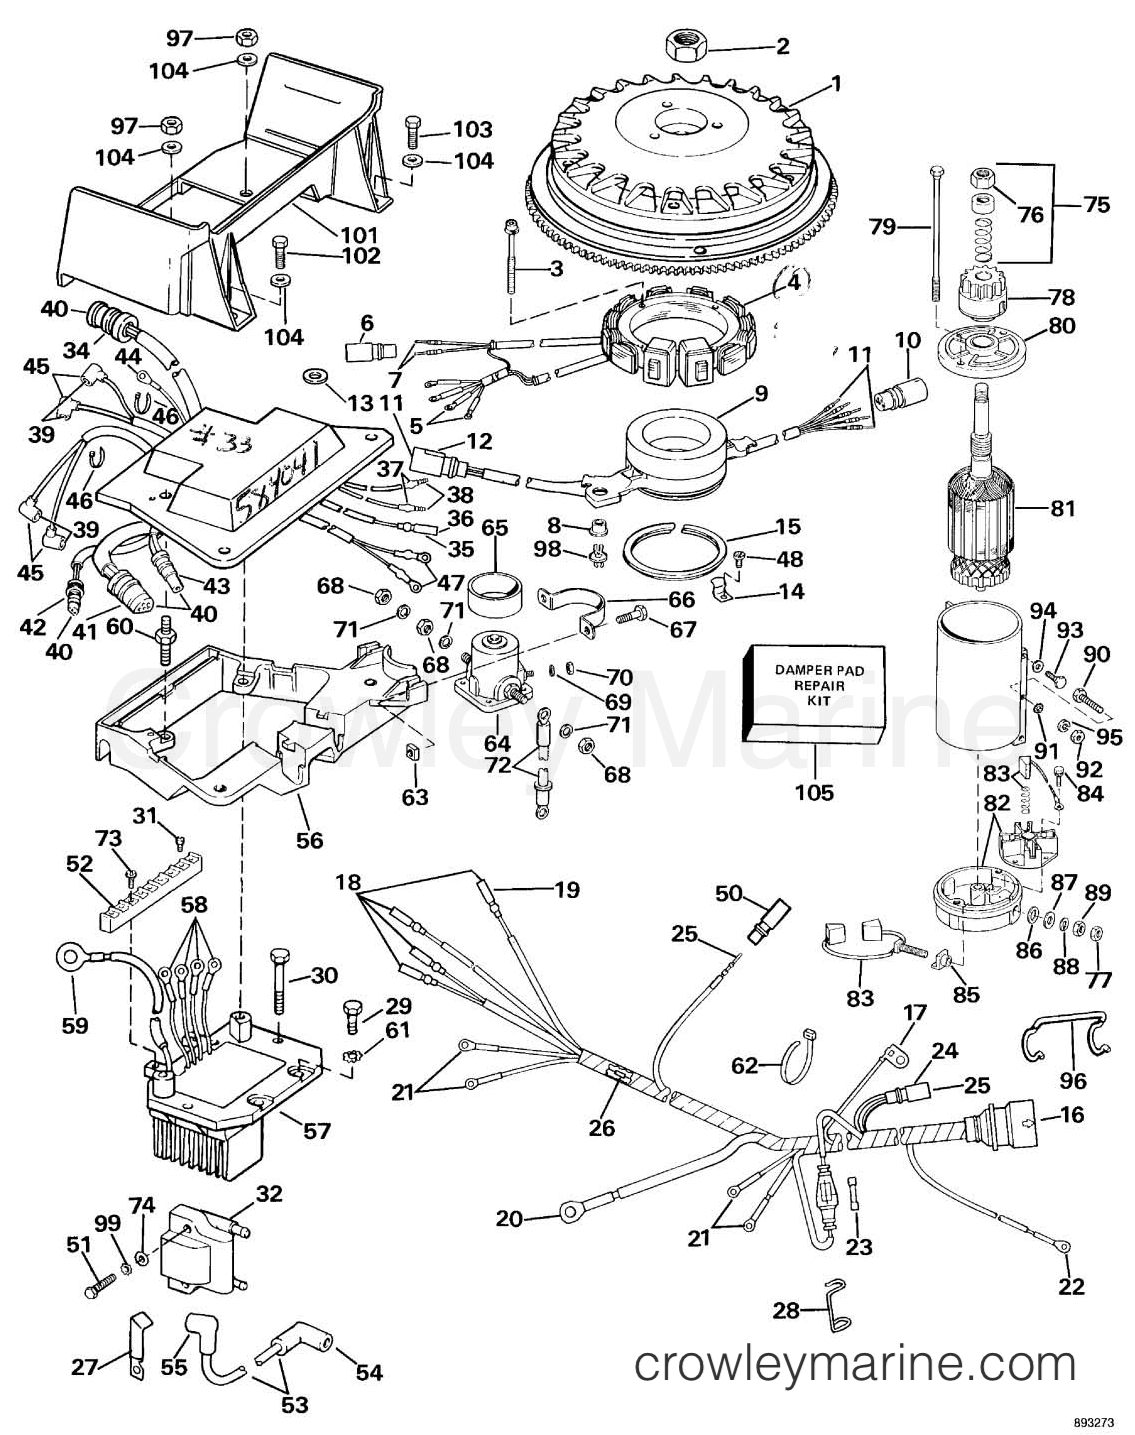 Omc Sea Drive Wiring Diagram Diagrams 1989 Ignition System Starter Motor 2 0l Rh Crowleymarine Com Mercury Switch 30